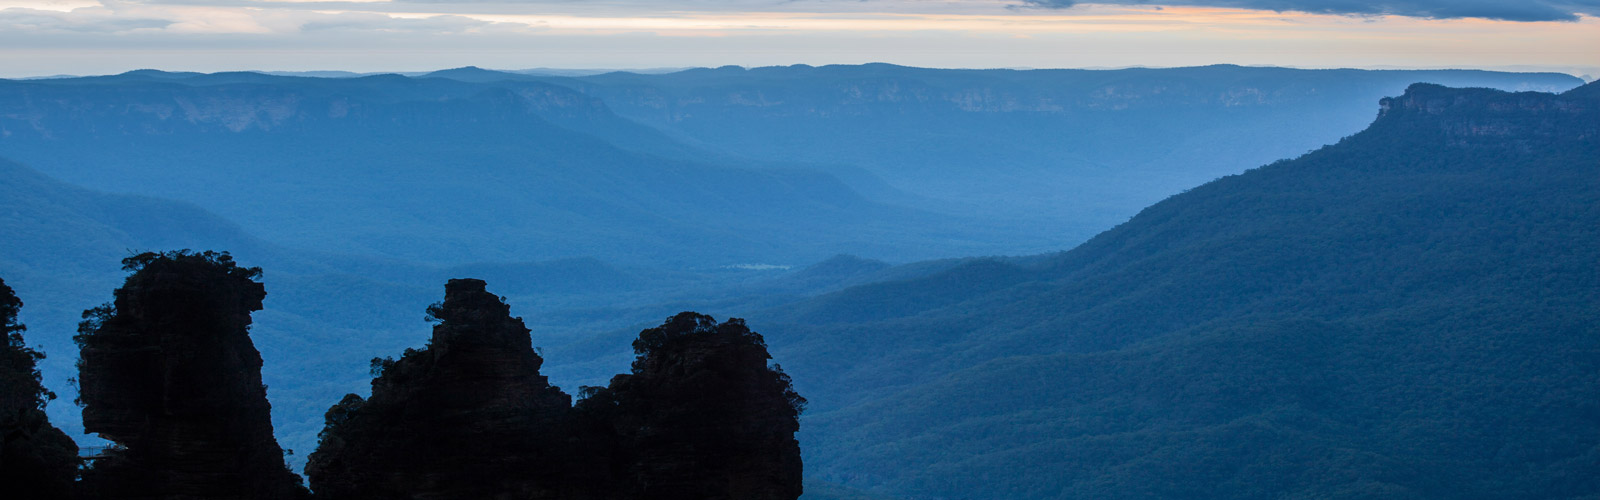 Blue Mountains Facts